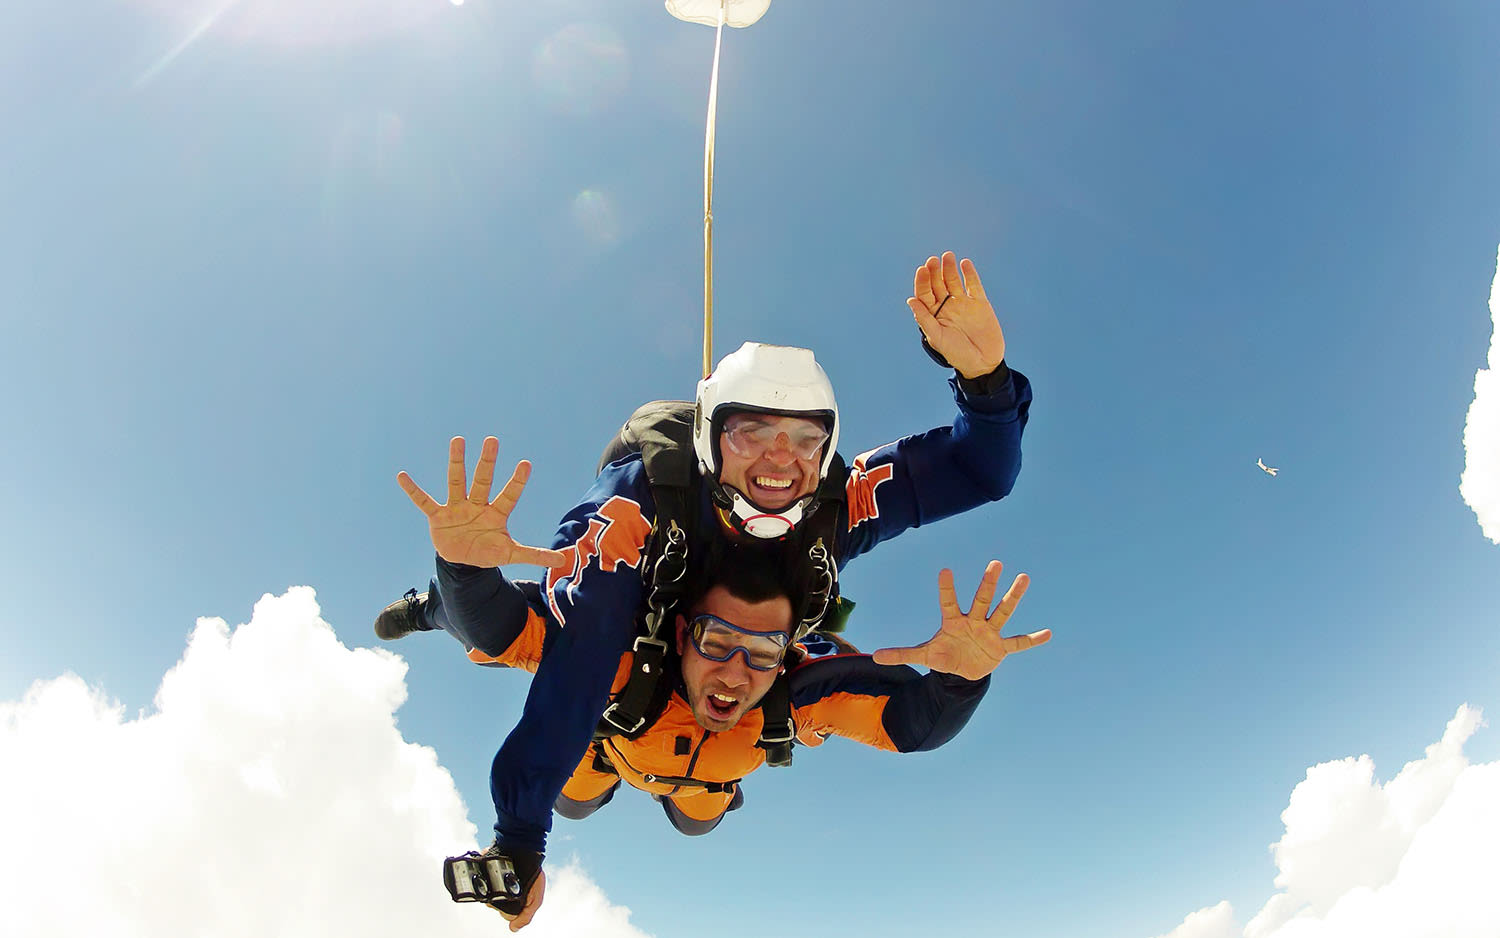 Two people doing a tandem skydive